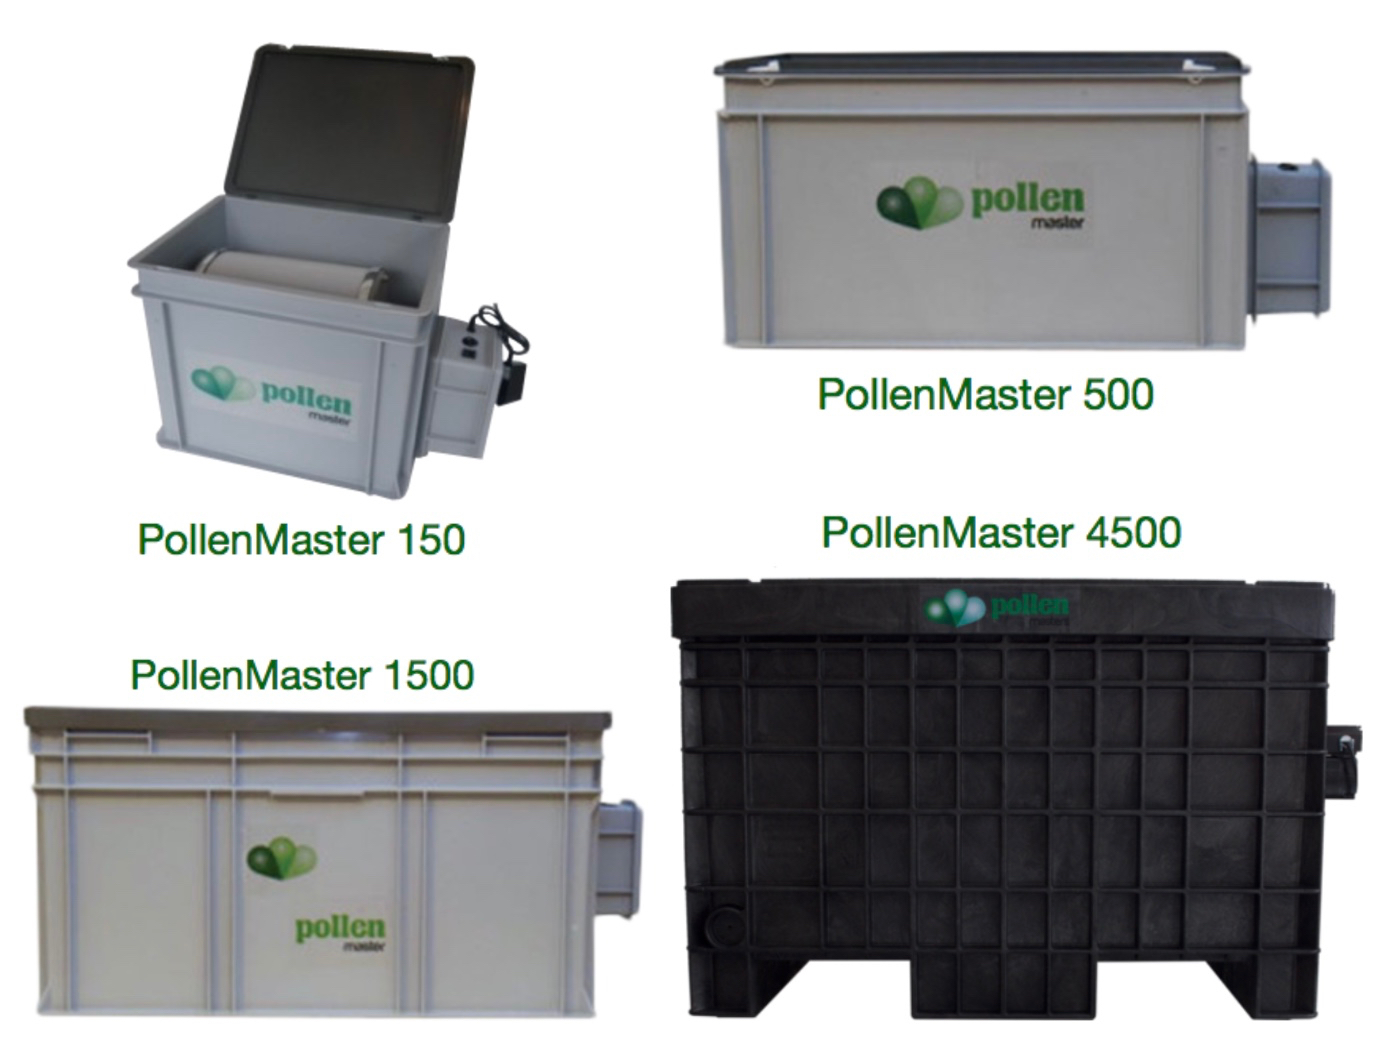 PollenMaster Dry Sift Pollenators ranked by size (150, 500, 1500 and 4500)